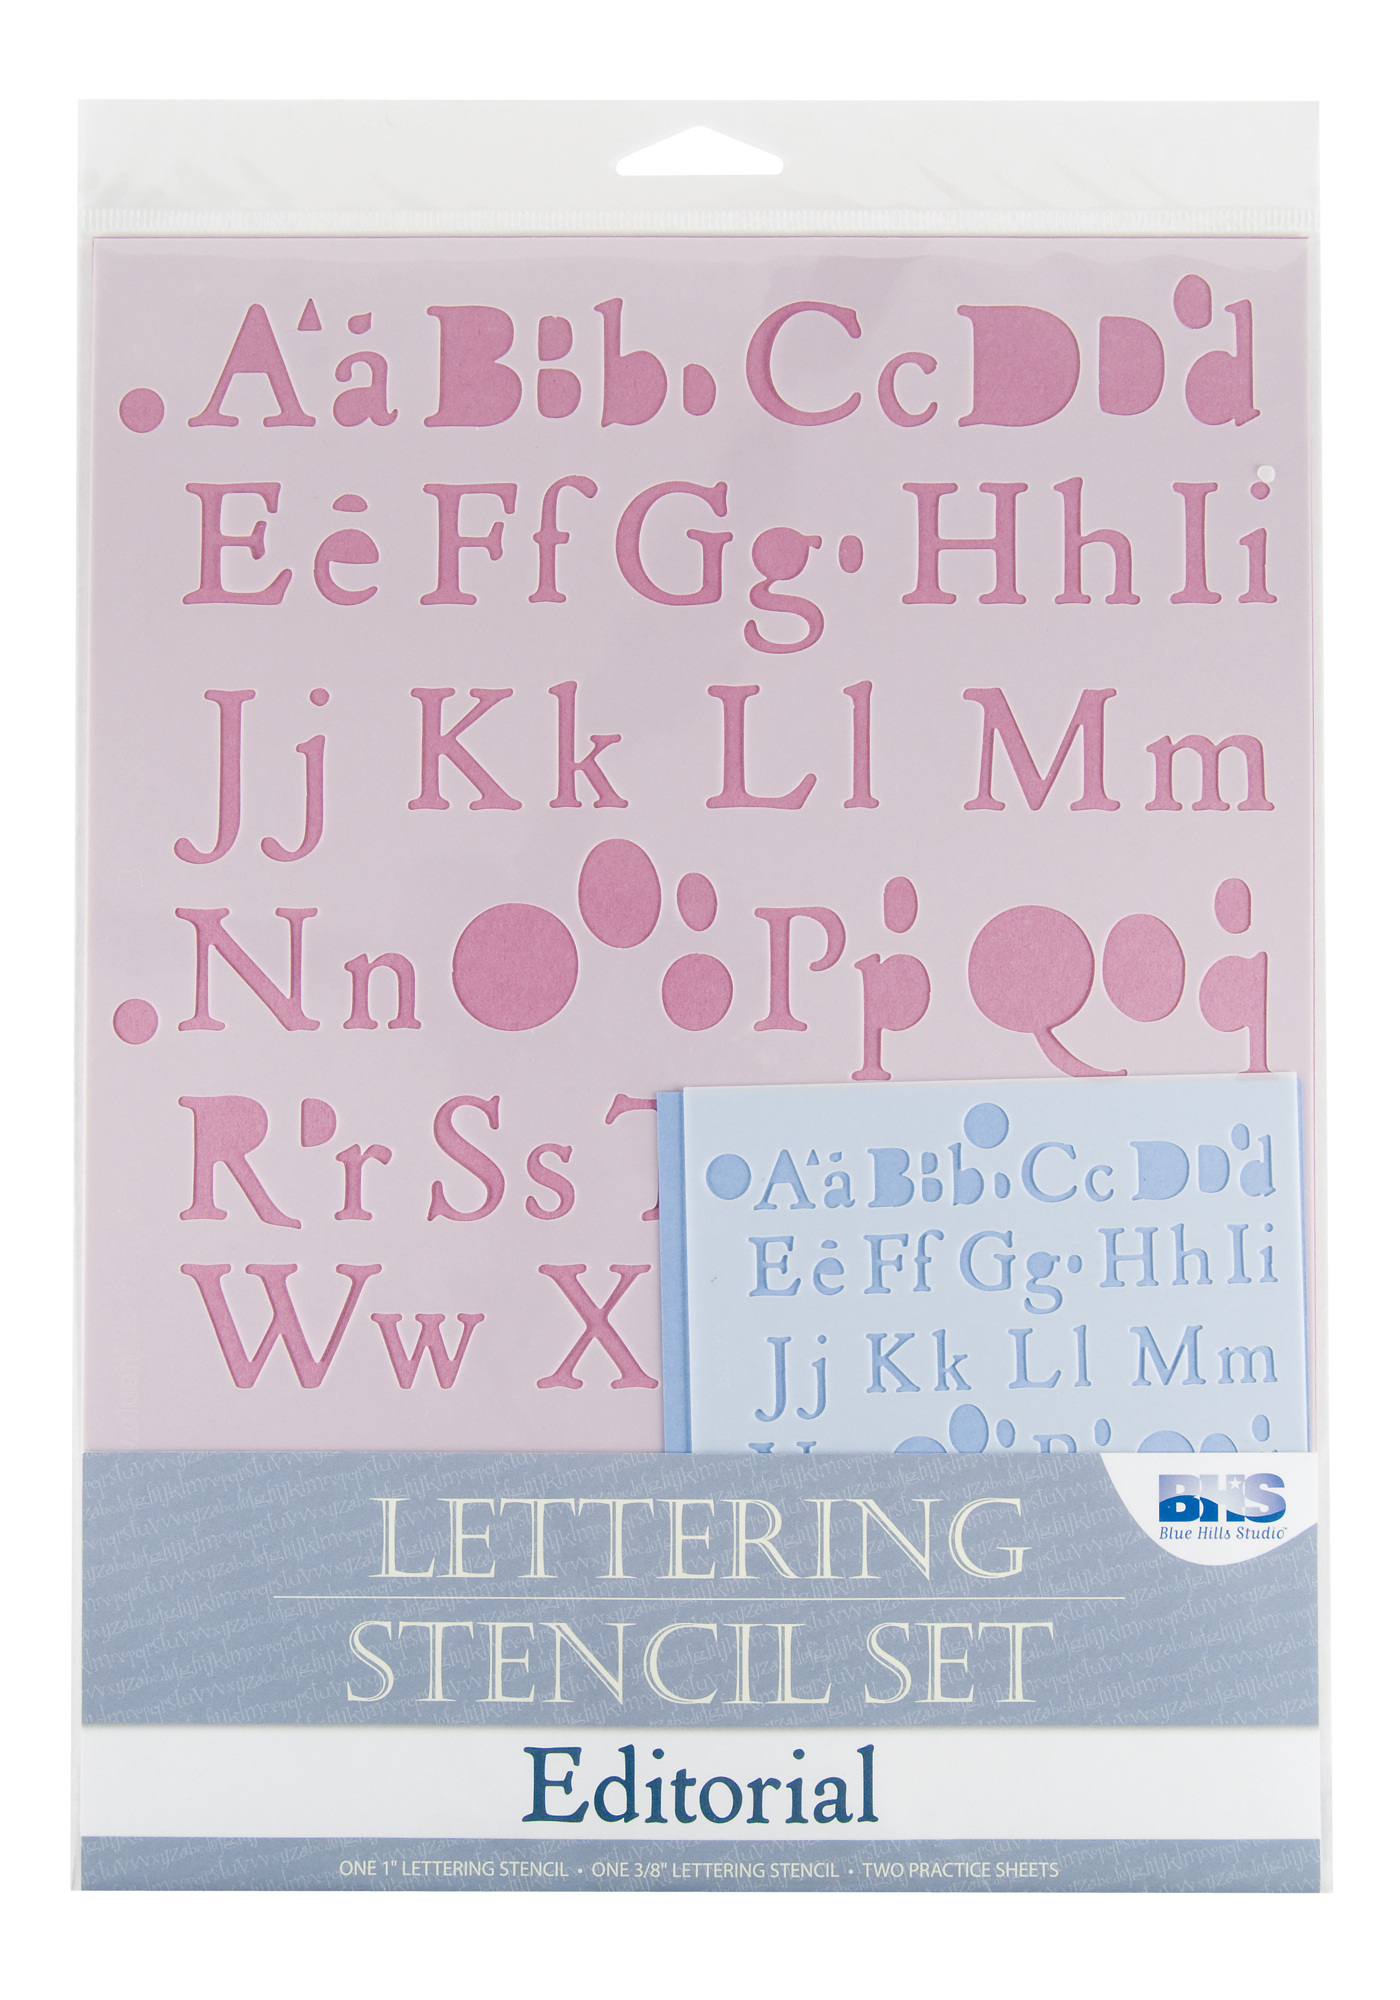 Lettering Stencil Set: Editorial